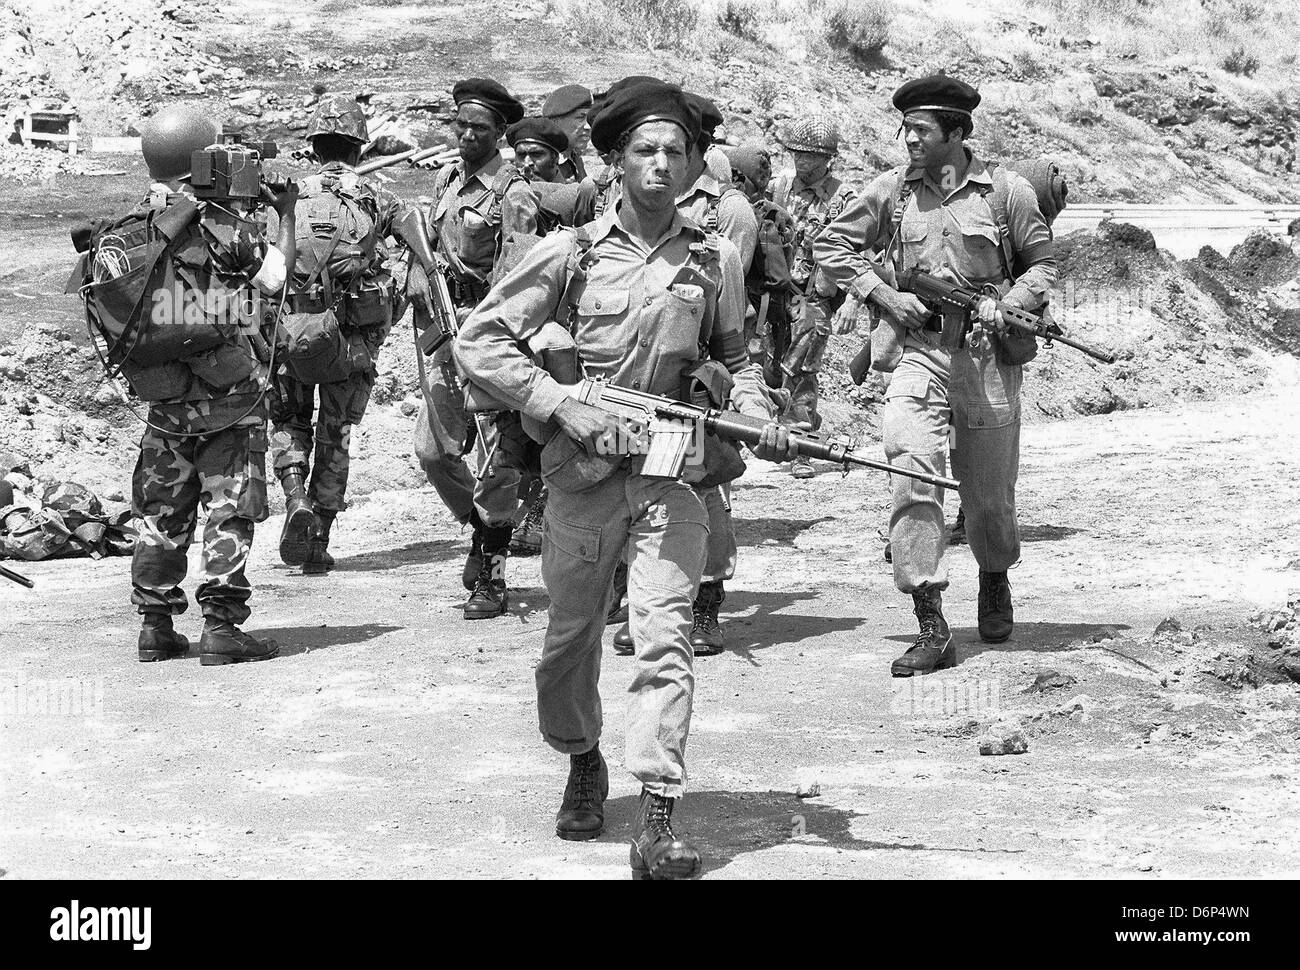 Members of the Eastern Caribbean Defense Force armed with a Belgian made 7.62 mm FN FAL rifles during the Invasion - Stock Image